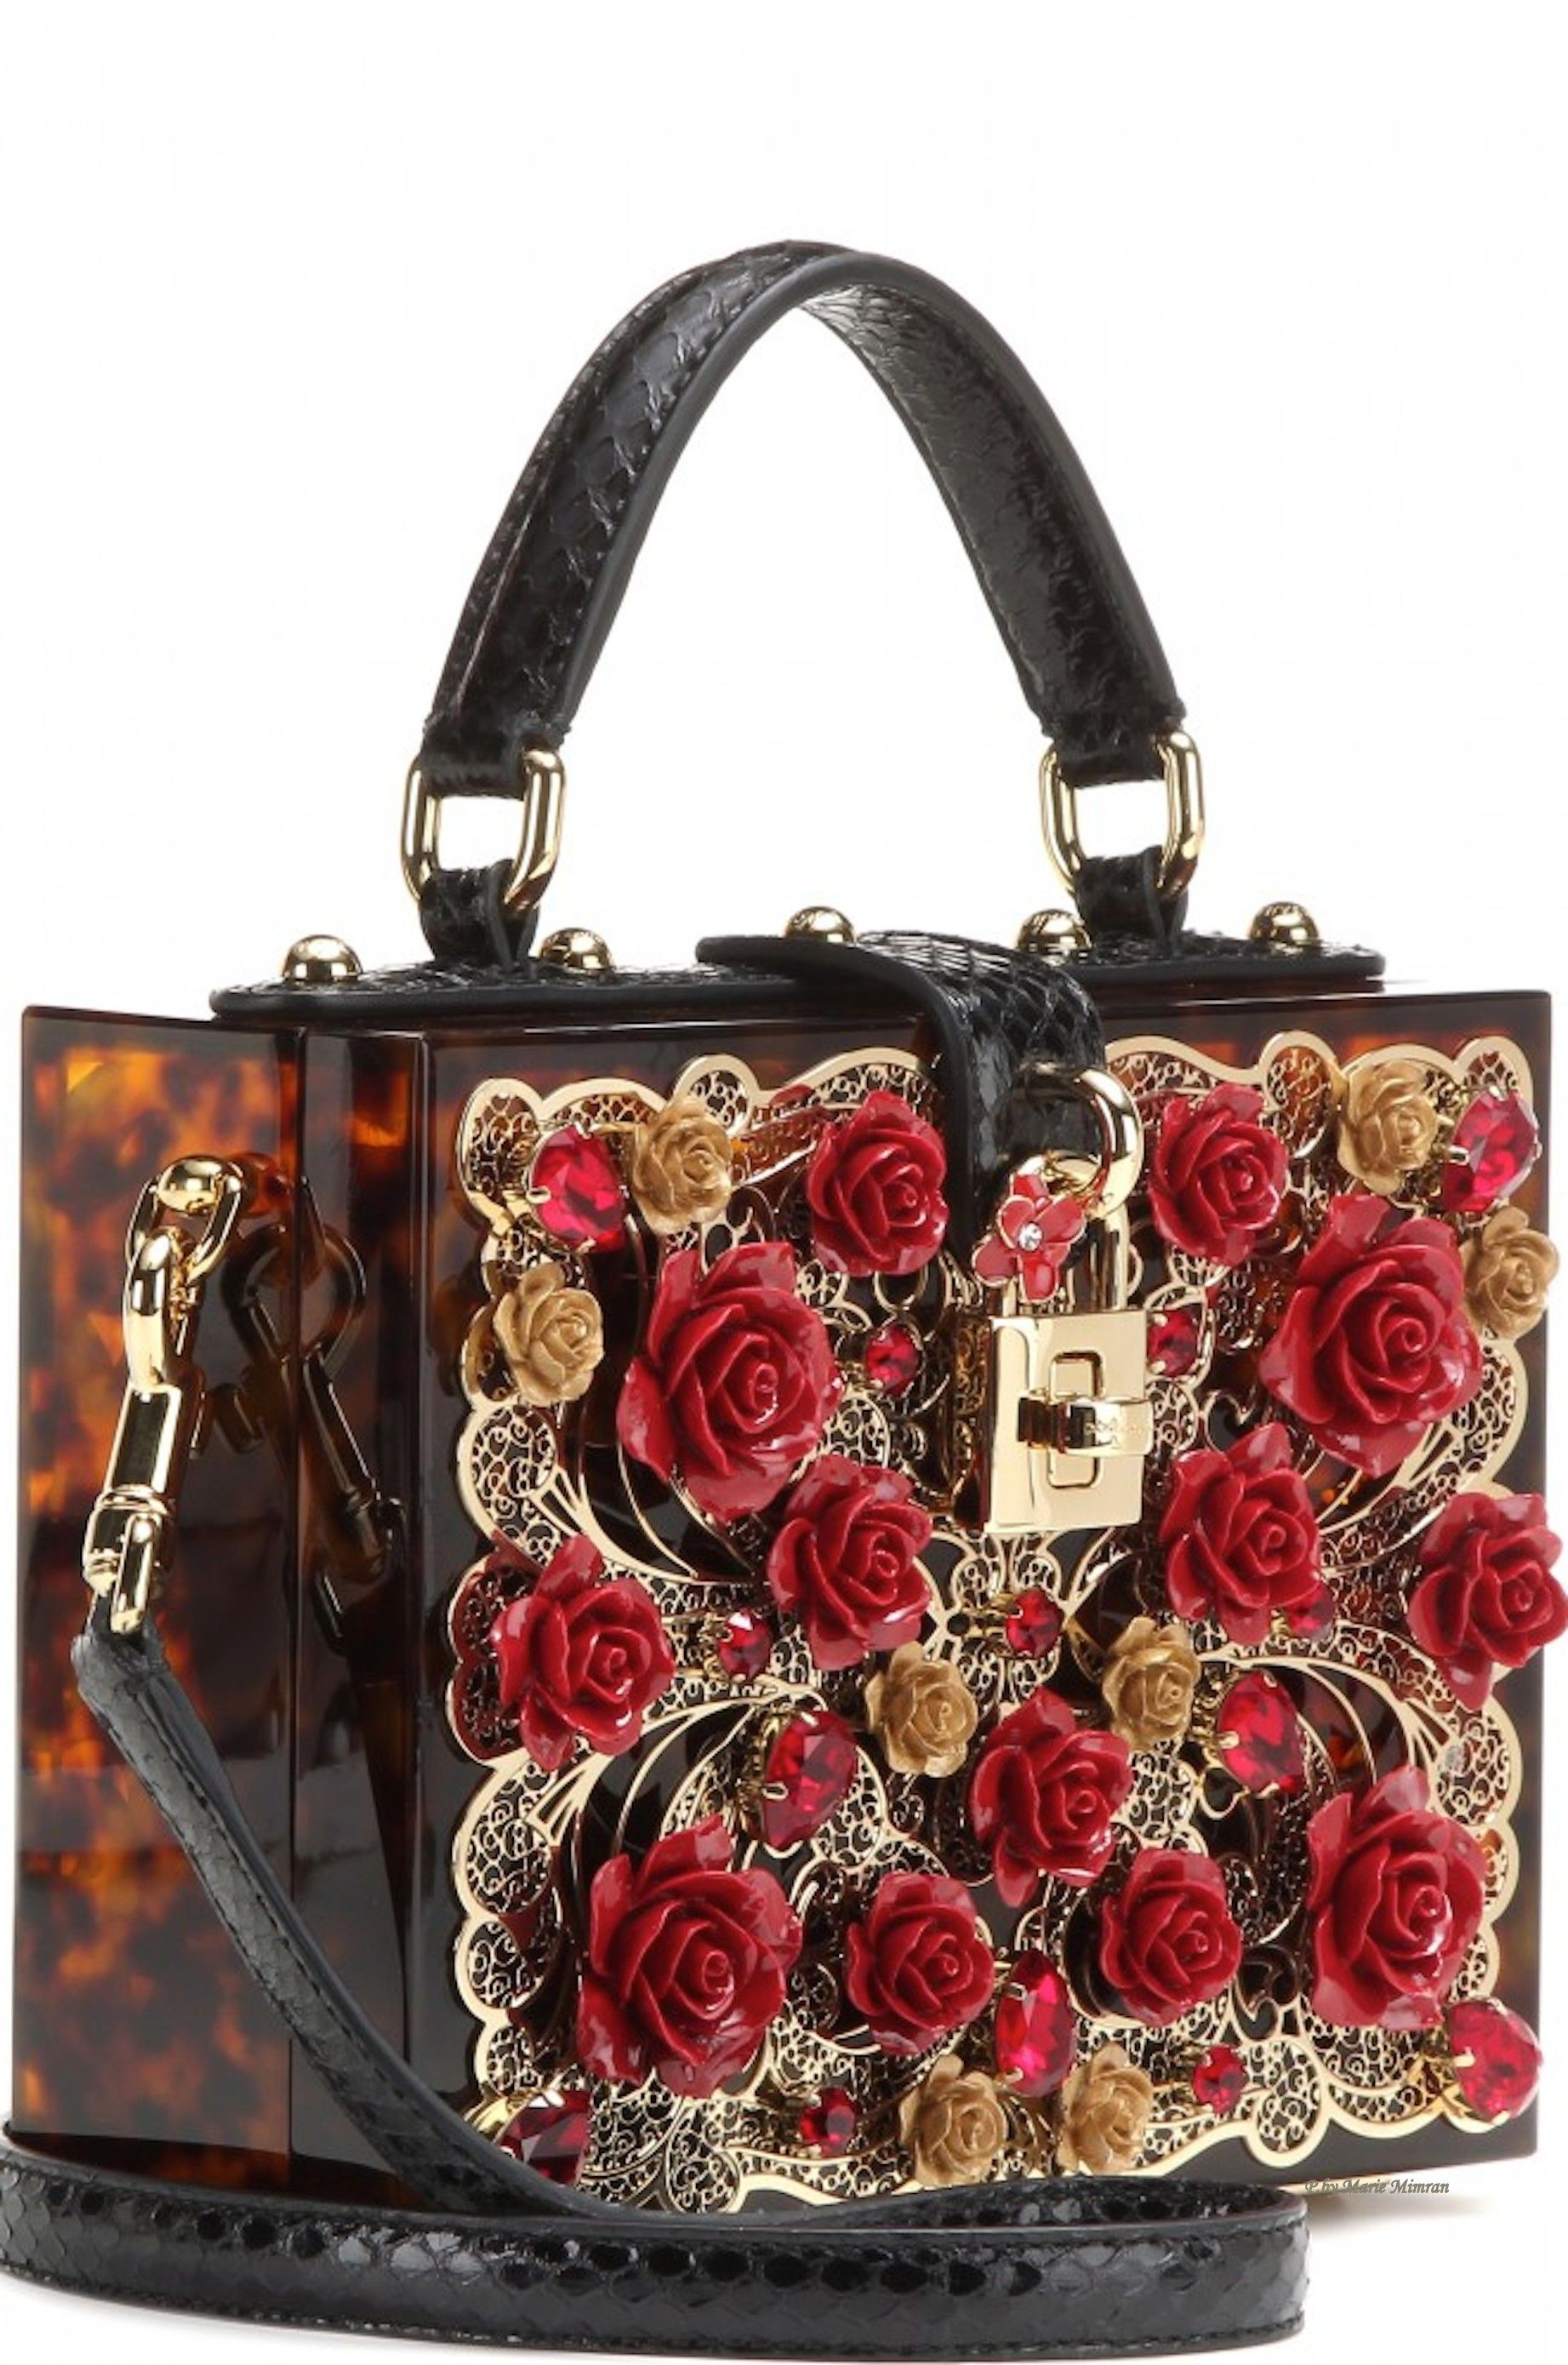 coachbags 38 on   Bolsos   Pinterest   Bolsos cartera, Bolso joya y ... a03c146c53